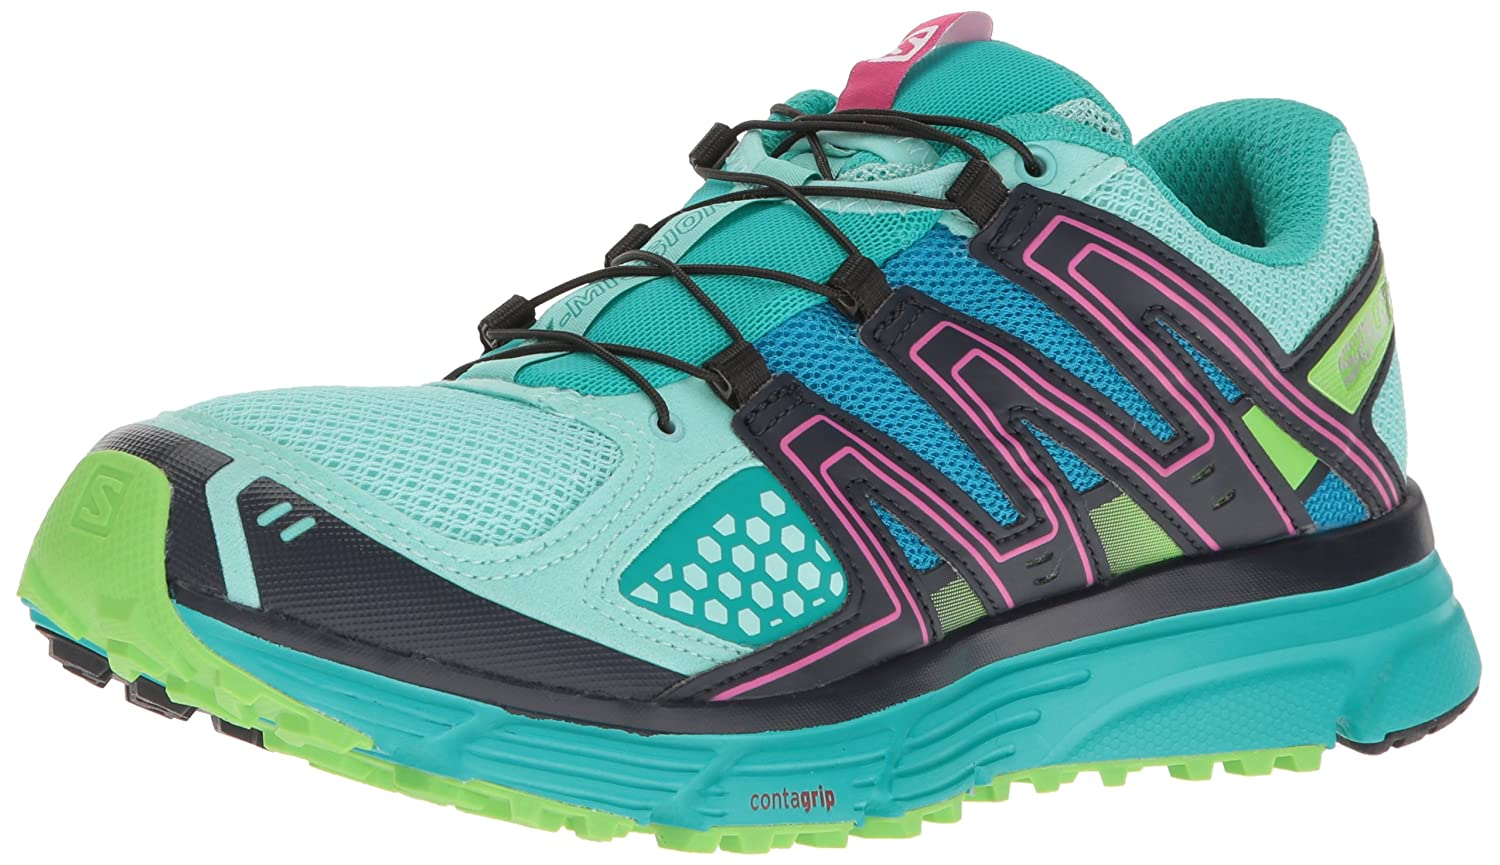 Salomon Women's X-Mission 3 W-w B01HD1V8BS 10.5 B(M) US|Aruba Blue/Navy Blazer/Green Flash